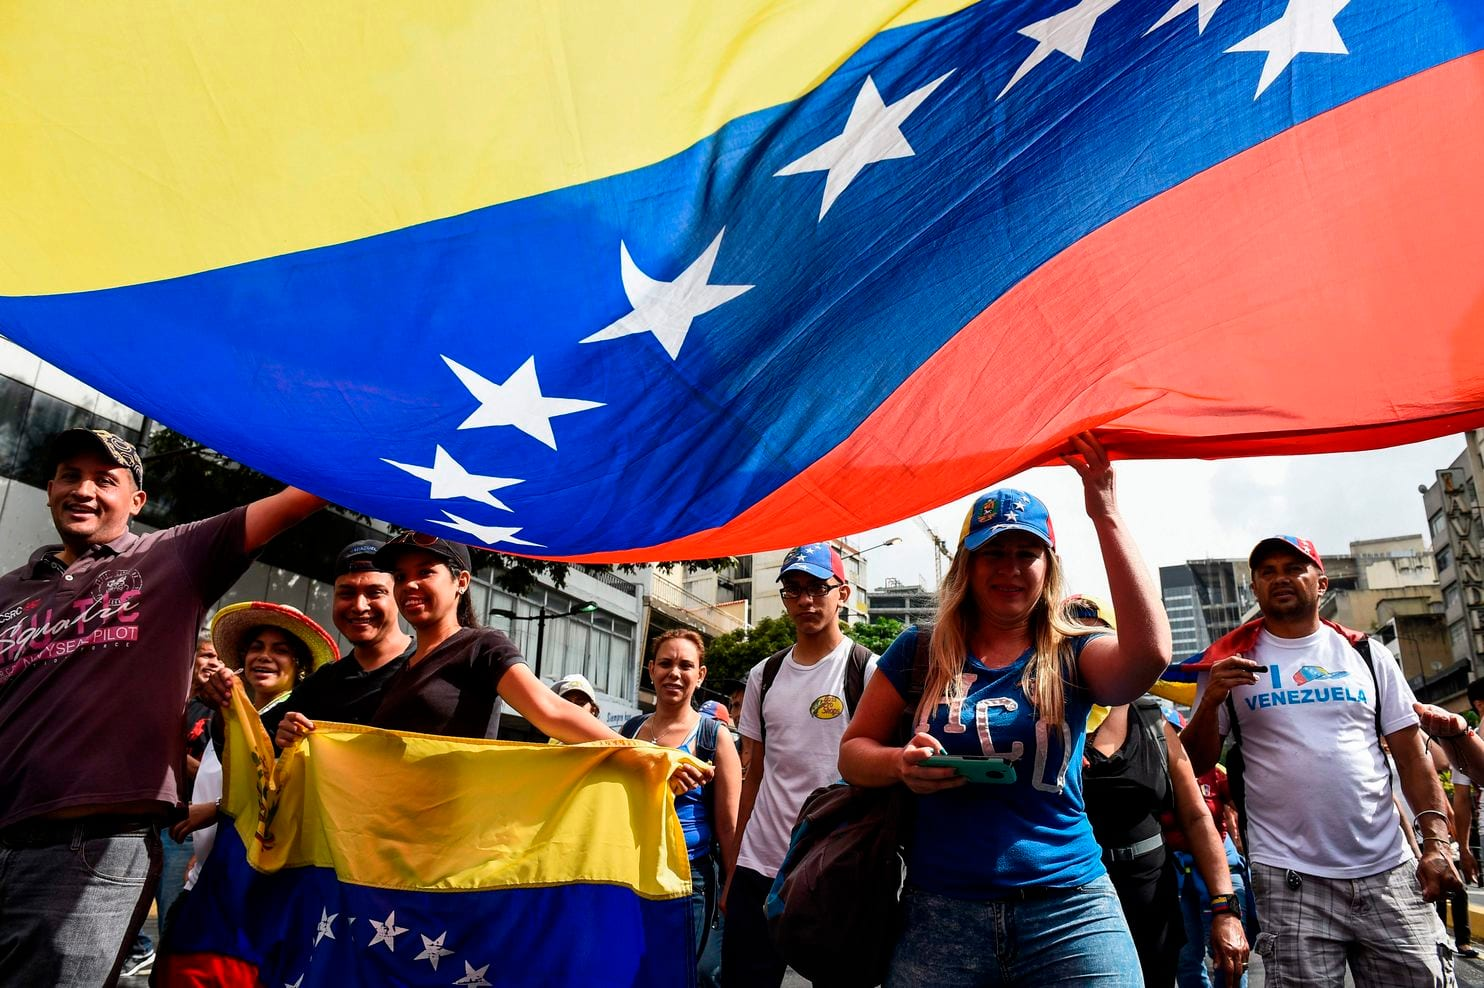 Pompeo says US tried and failed to unite Venezuelan opposition in leaked audio